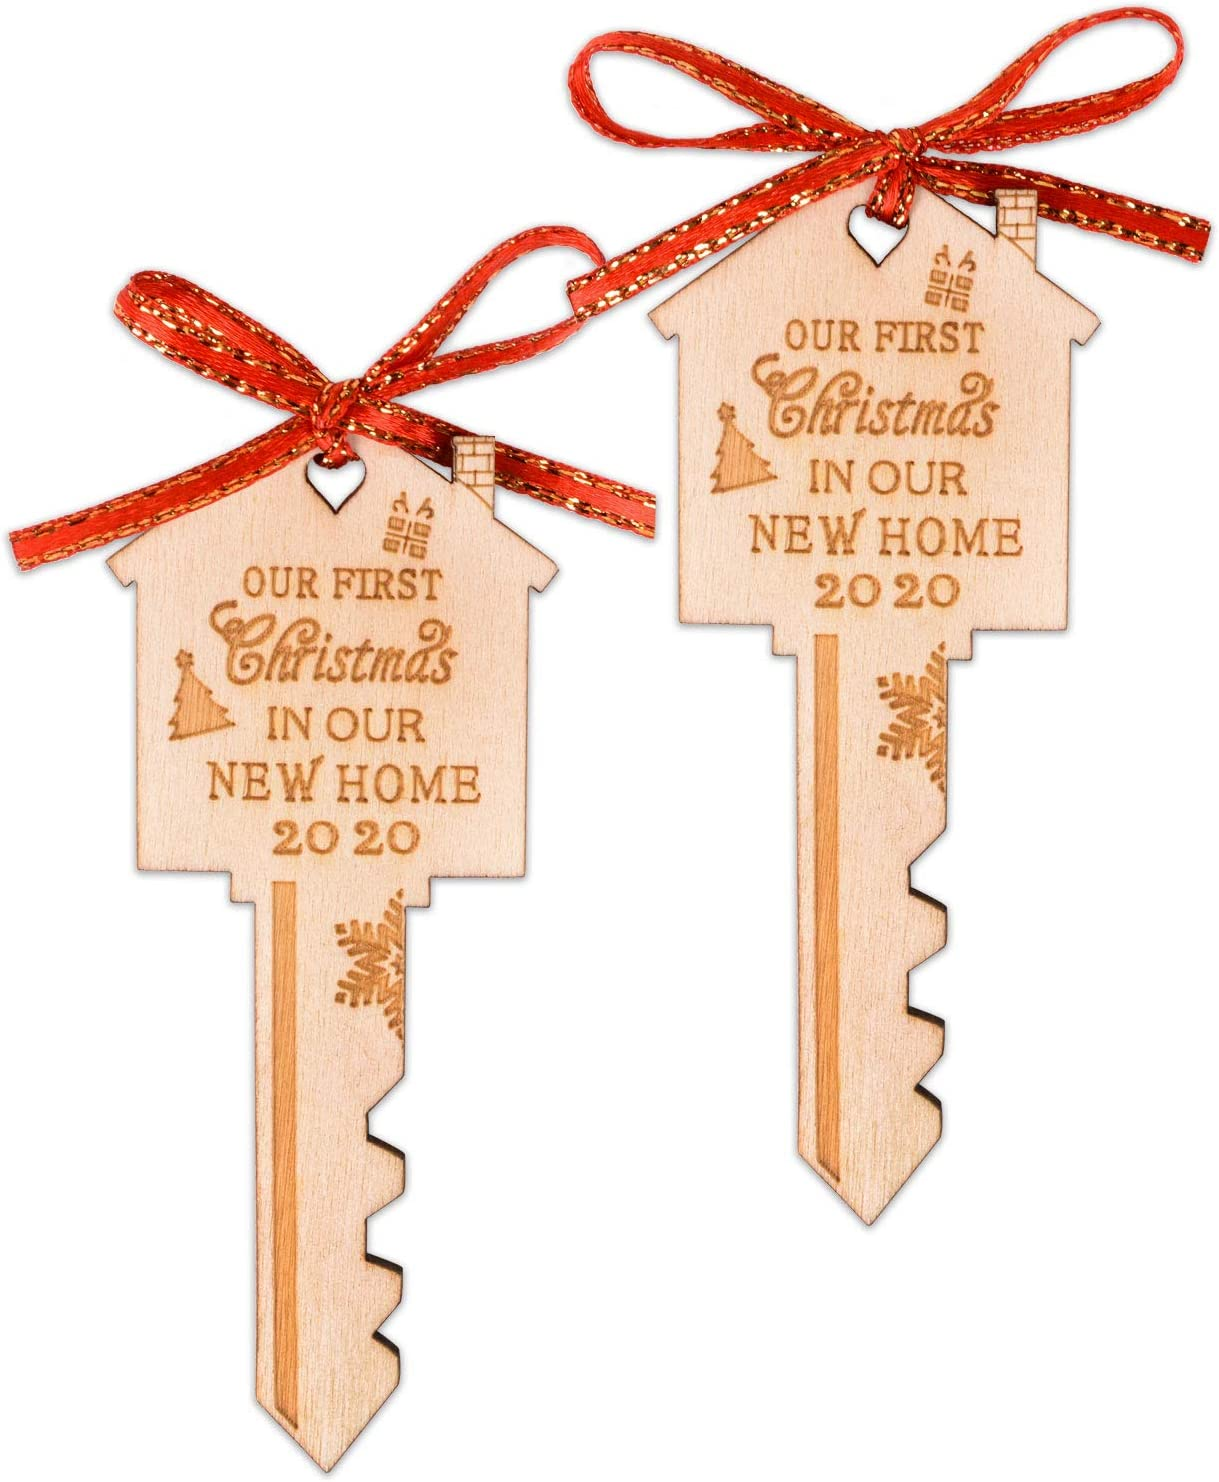 First Christmas in Our New Home Wooden Key Christmas Ornament 2020 for Housewarming, Xmas Tree and Holiday Decoration (2 Pack)